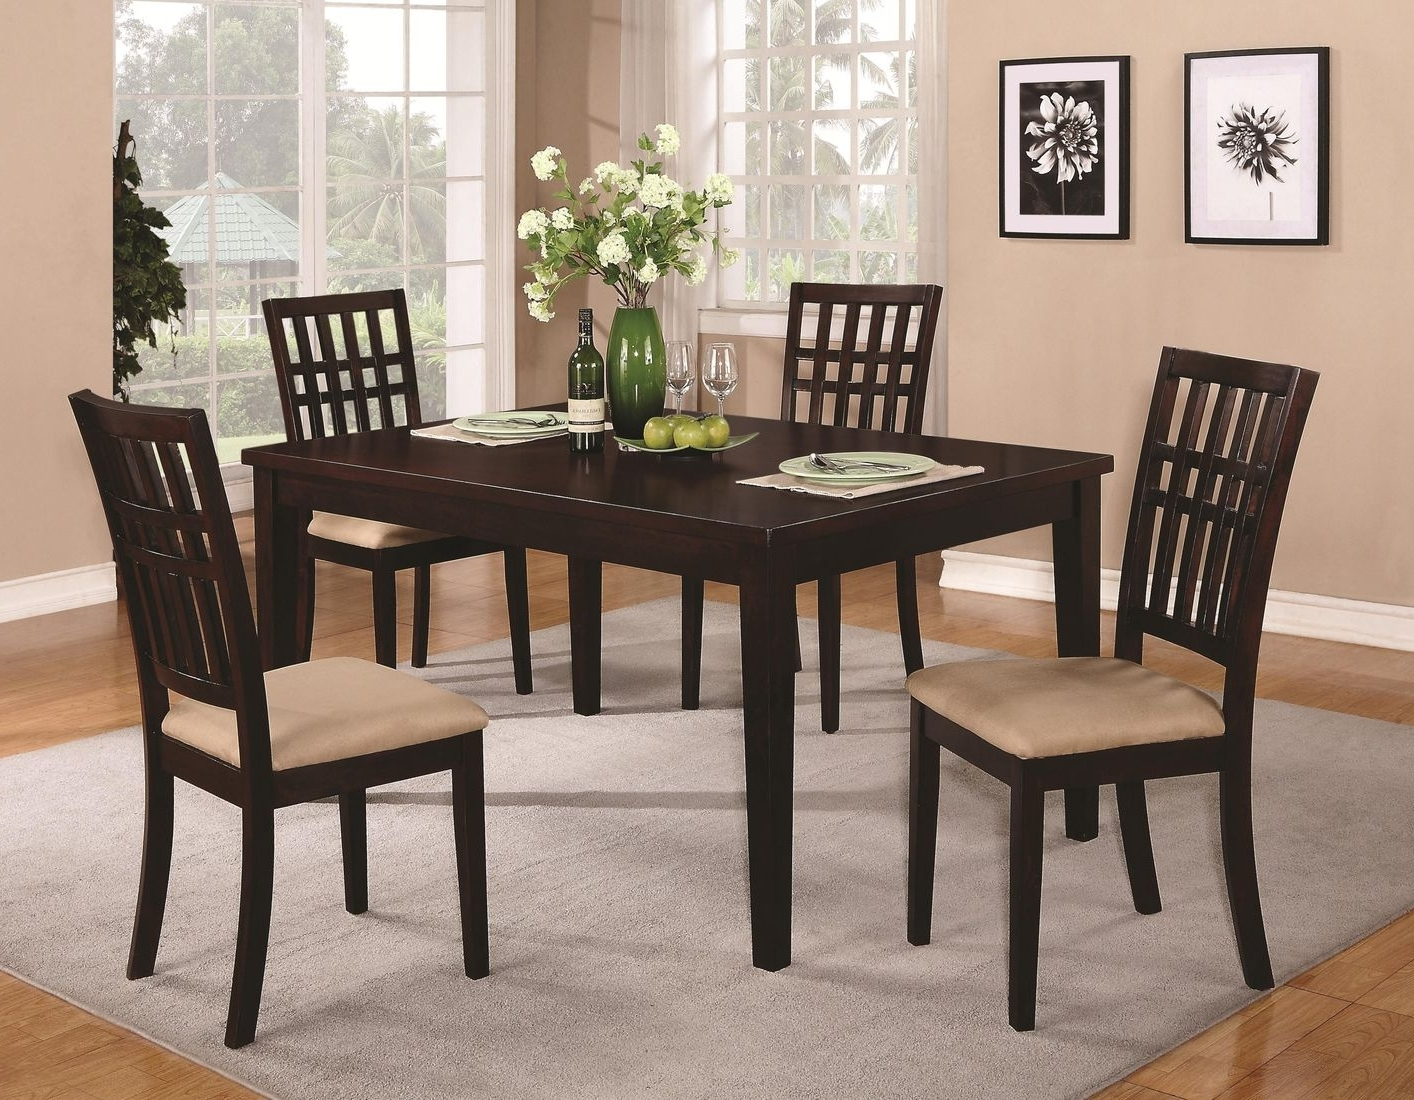 Trendy Brandt Dark Cherry Wood Dining Table – Steal A Sofa Furniture Outlet For Black Wood Dining Tables Sets (View 23 of 25)